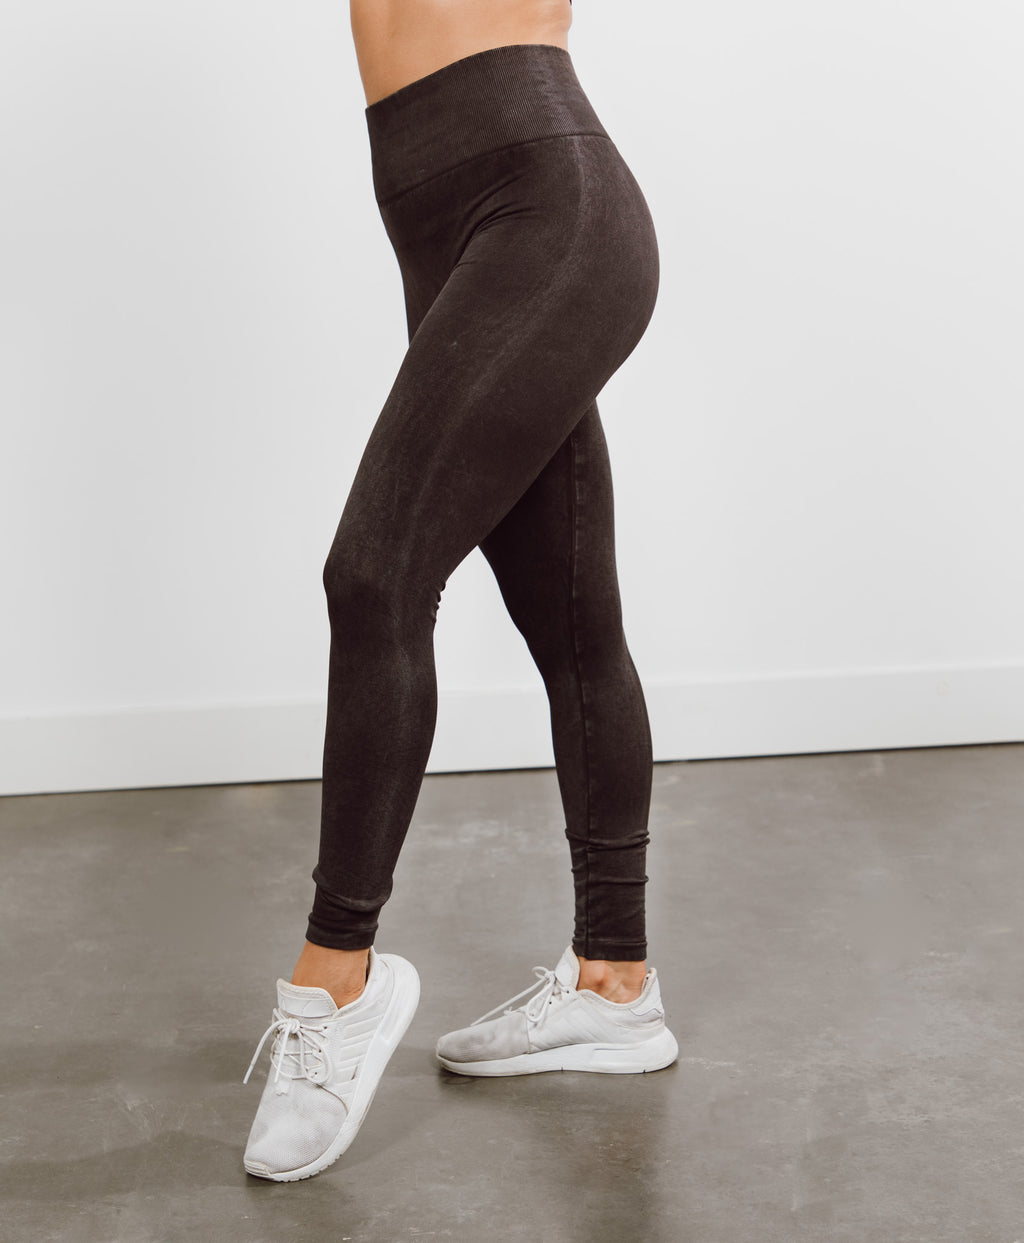 Raven Seamless Leggings